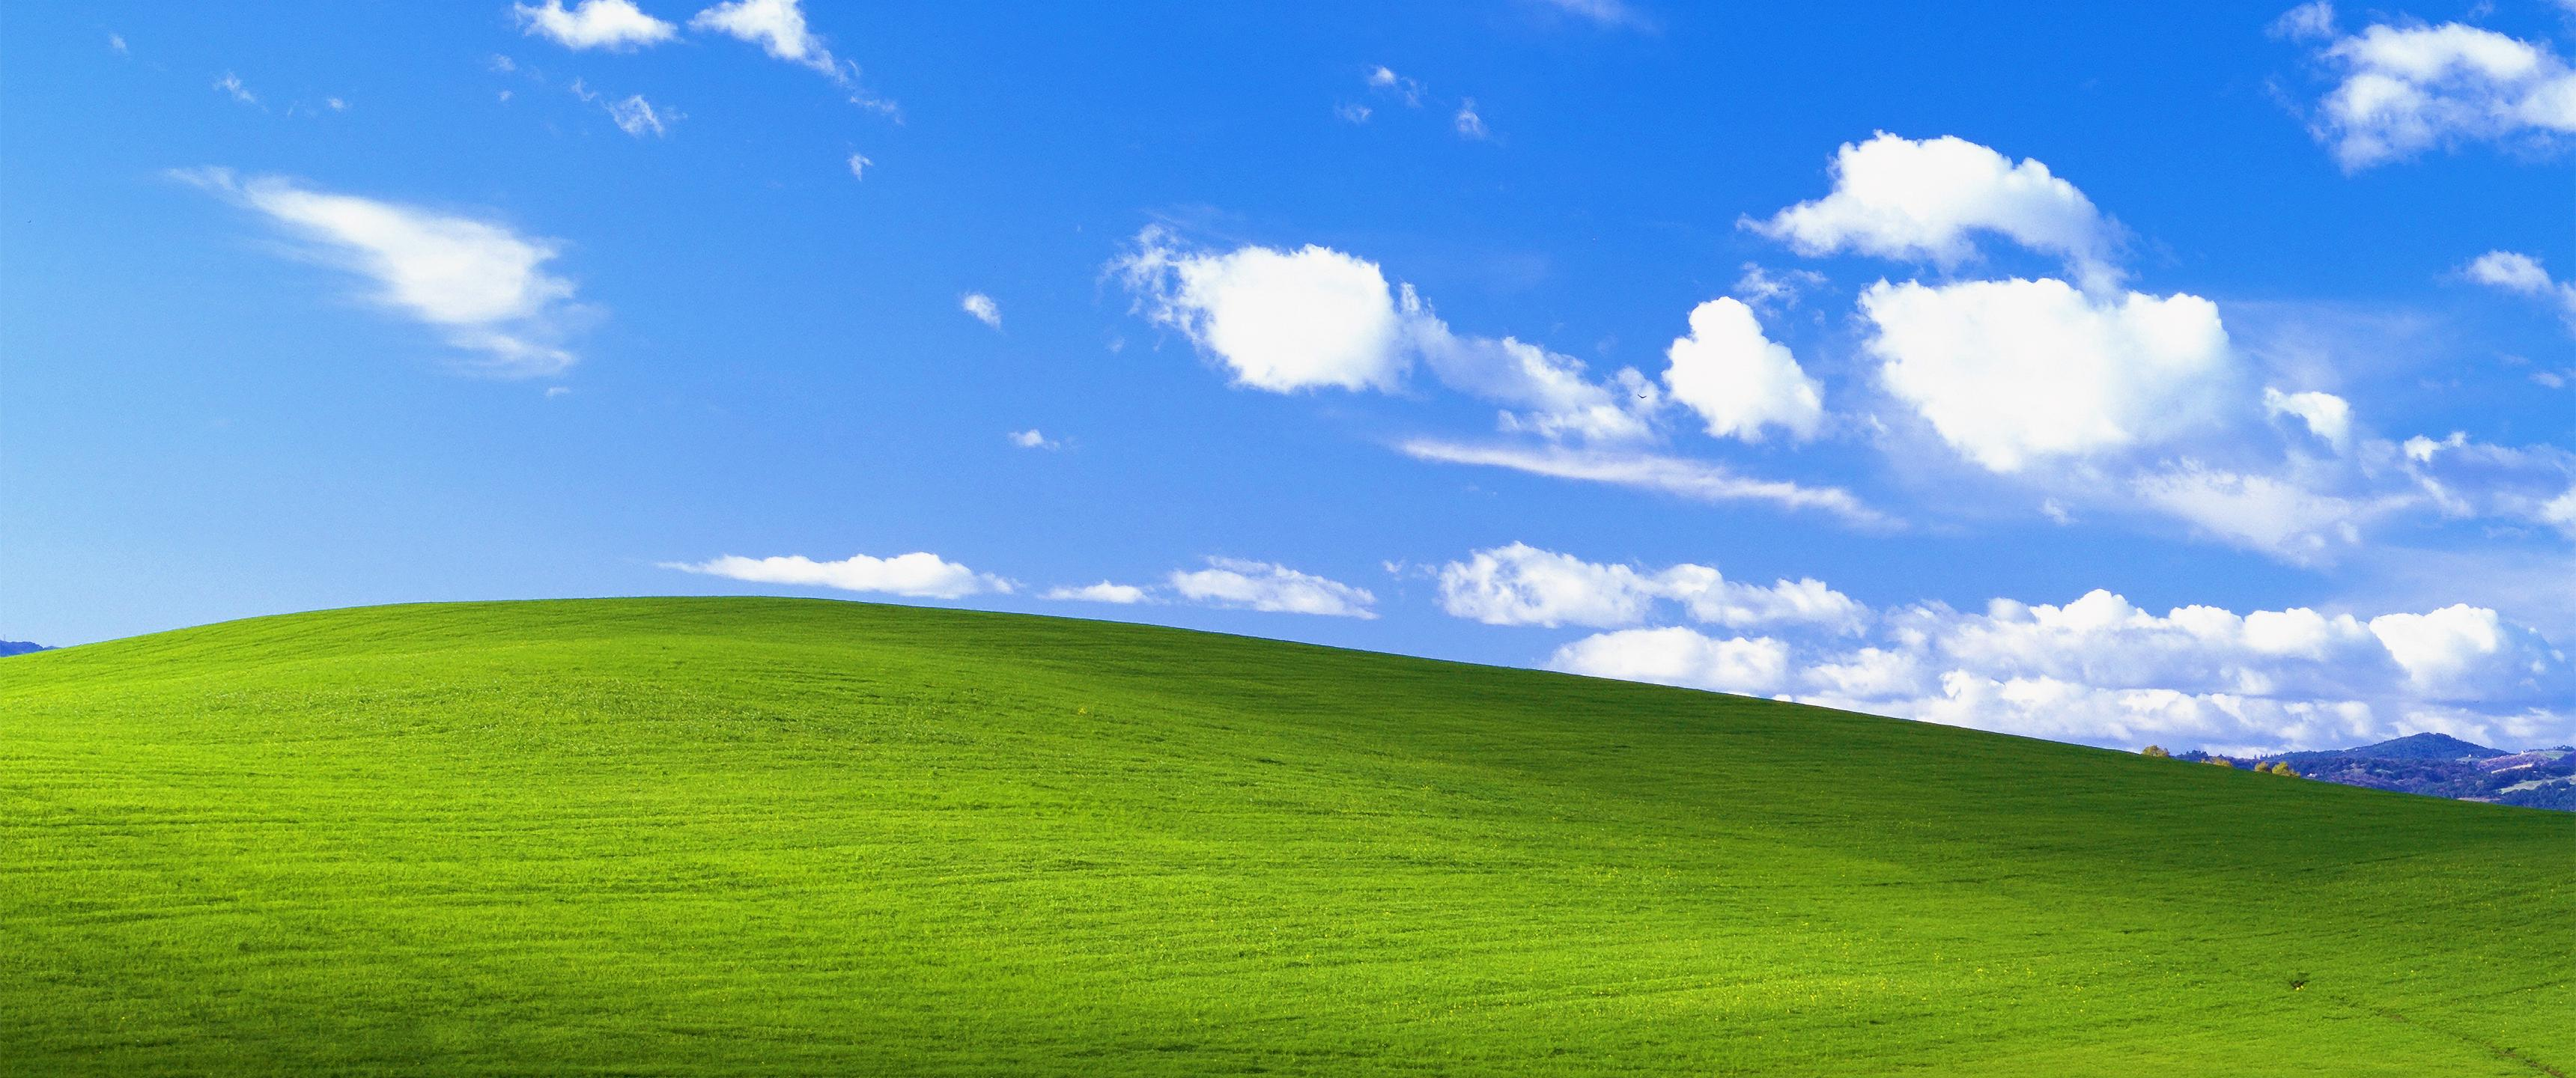 Windows XP High RES Bliss Wallpaper   Album on Imgur 3440x1440